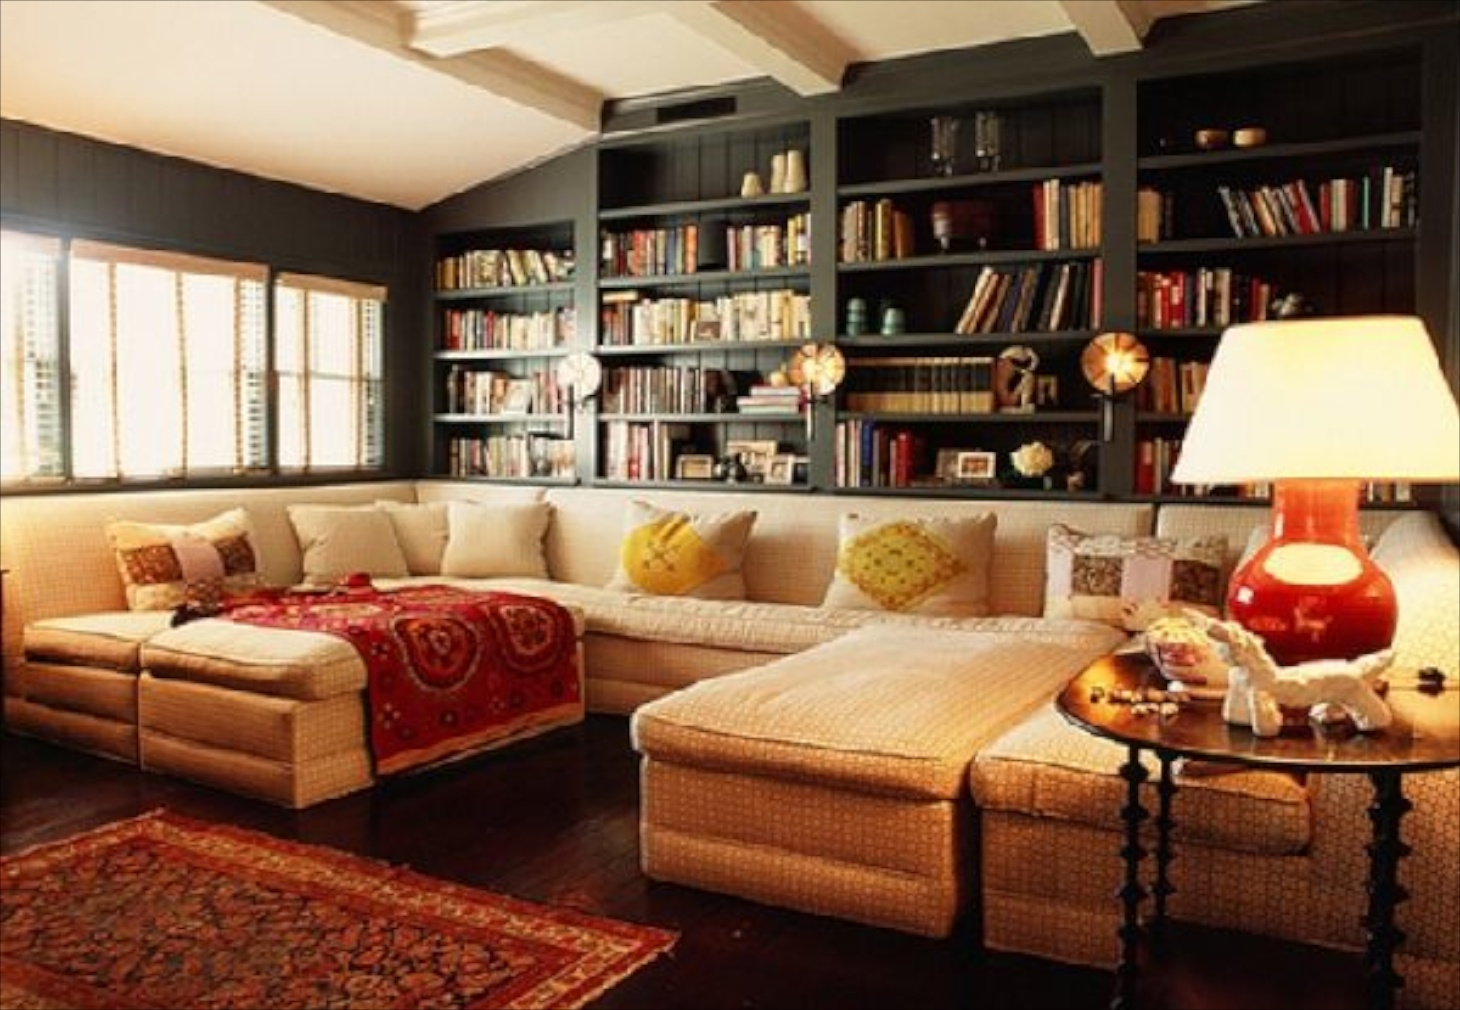 23 sofas and bookcase ideas in cozy living room design for Cozy family room ideas